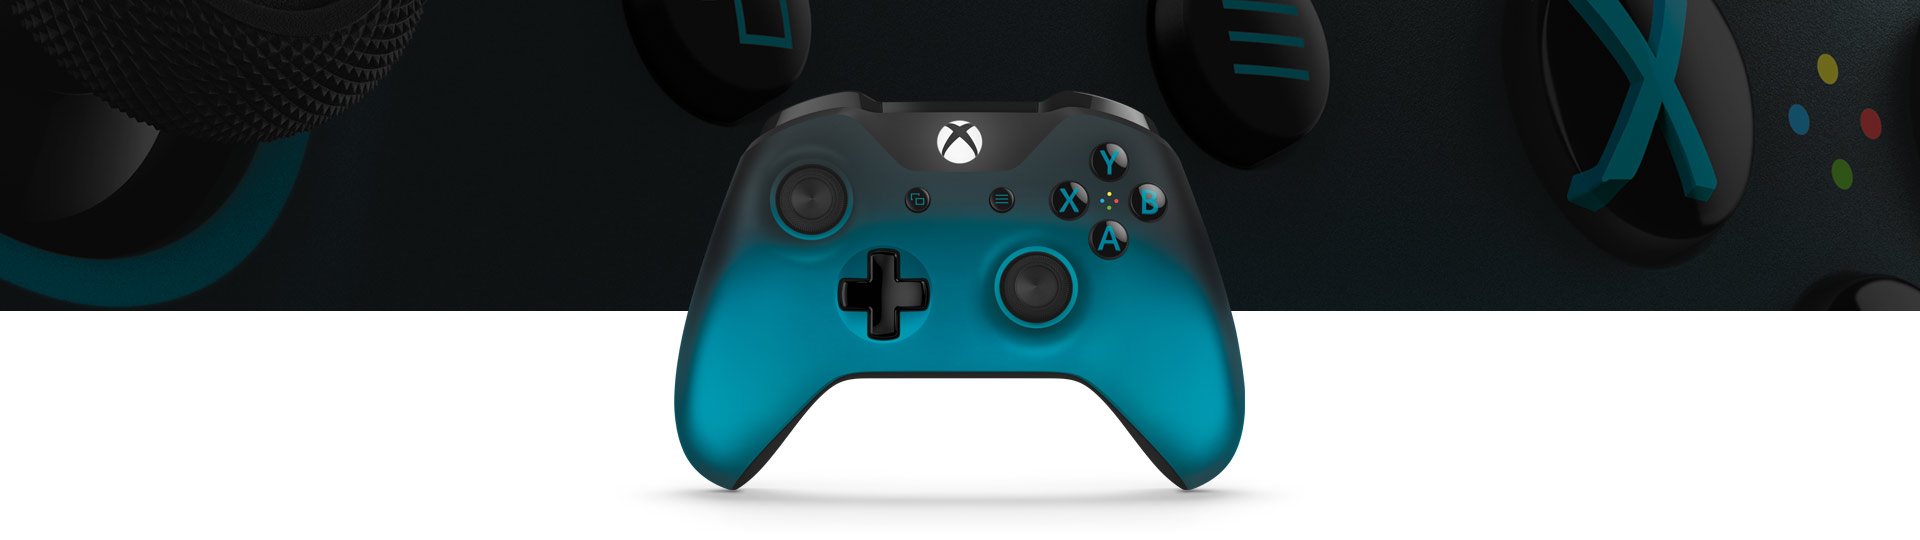 small resolution of xbox wireless controller ocean shadow special edition